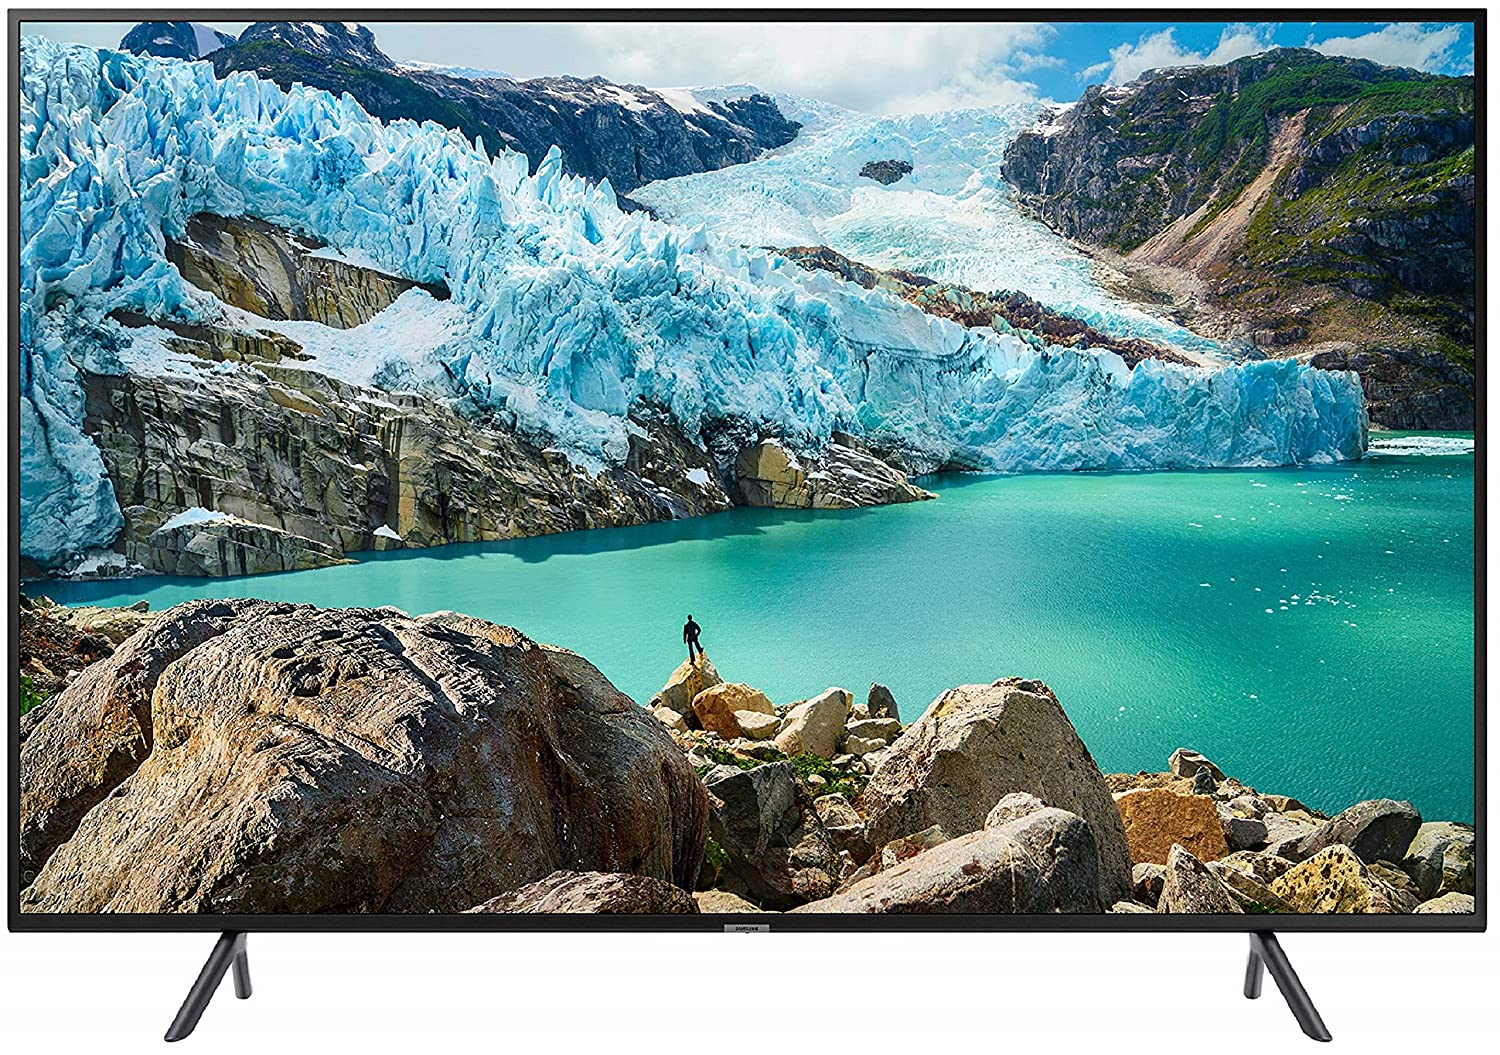 Samsung UA49RU7100KXXL Best Smart TV